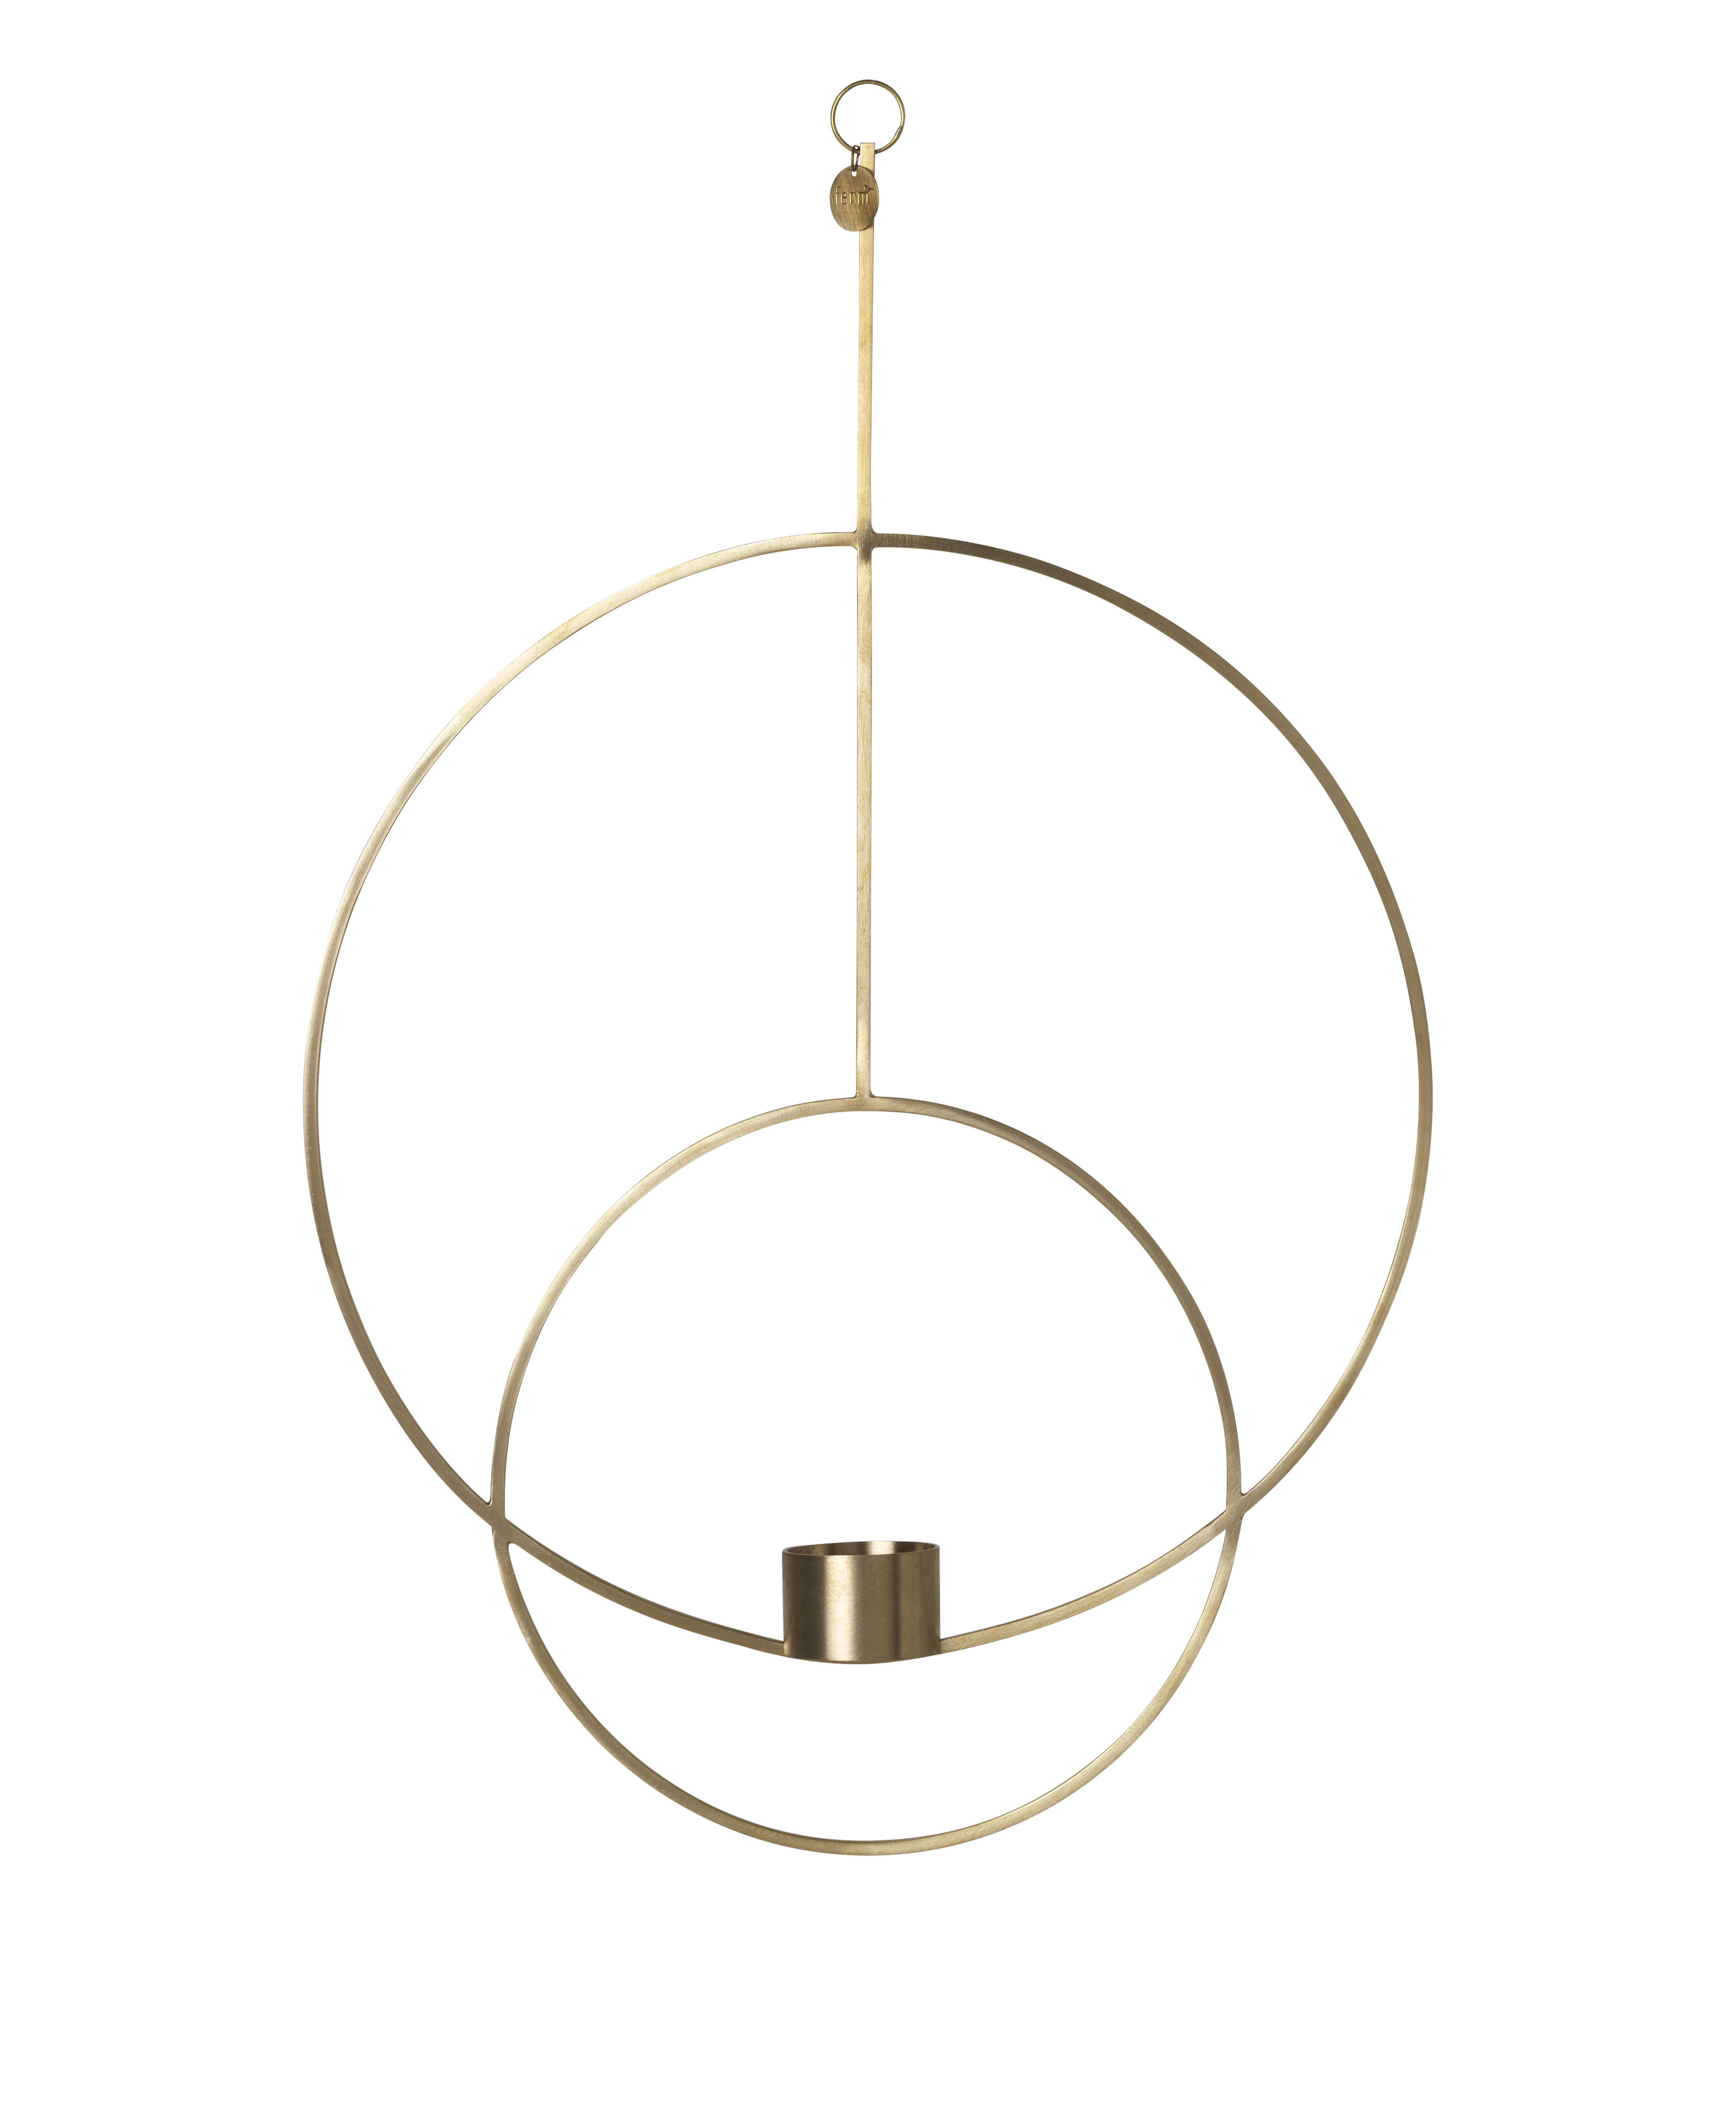 Decoration - Candles & Candle Holders - Circular Candlestick to hang - / L 30 x H 45 cm by Ferm Living - Brass - Solid brass